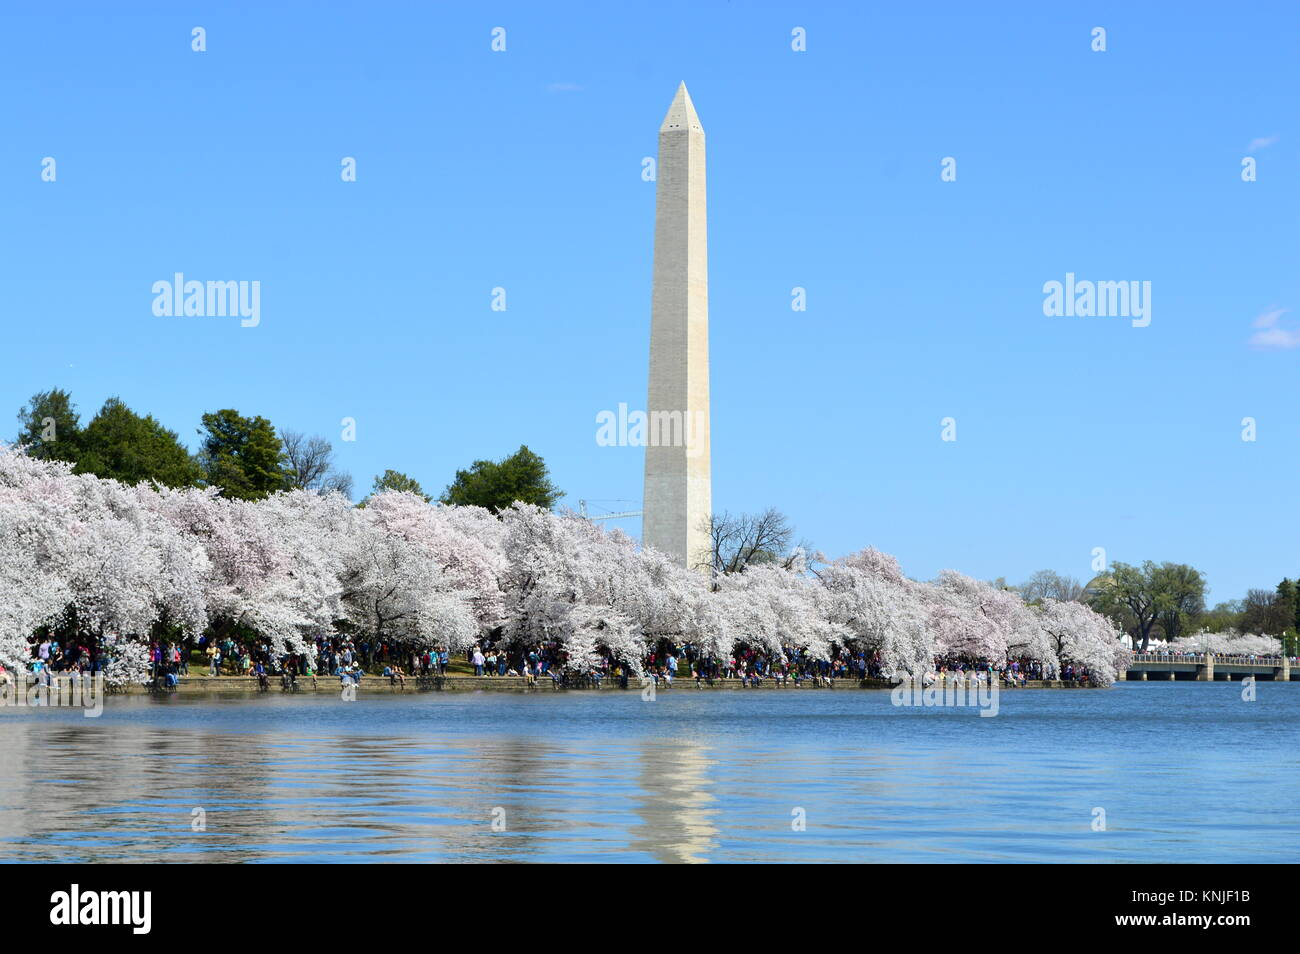 Washington DC, Columbia, États-Unis - 11 Avril 2015 : Washington-DC-Monument-cherry-blossom Photo Stock